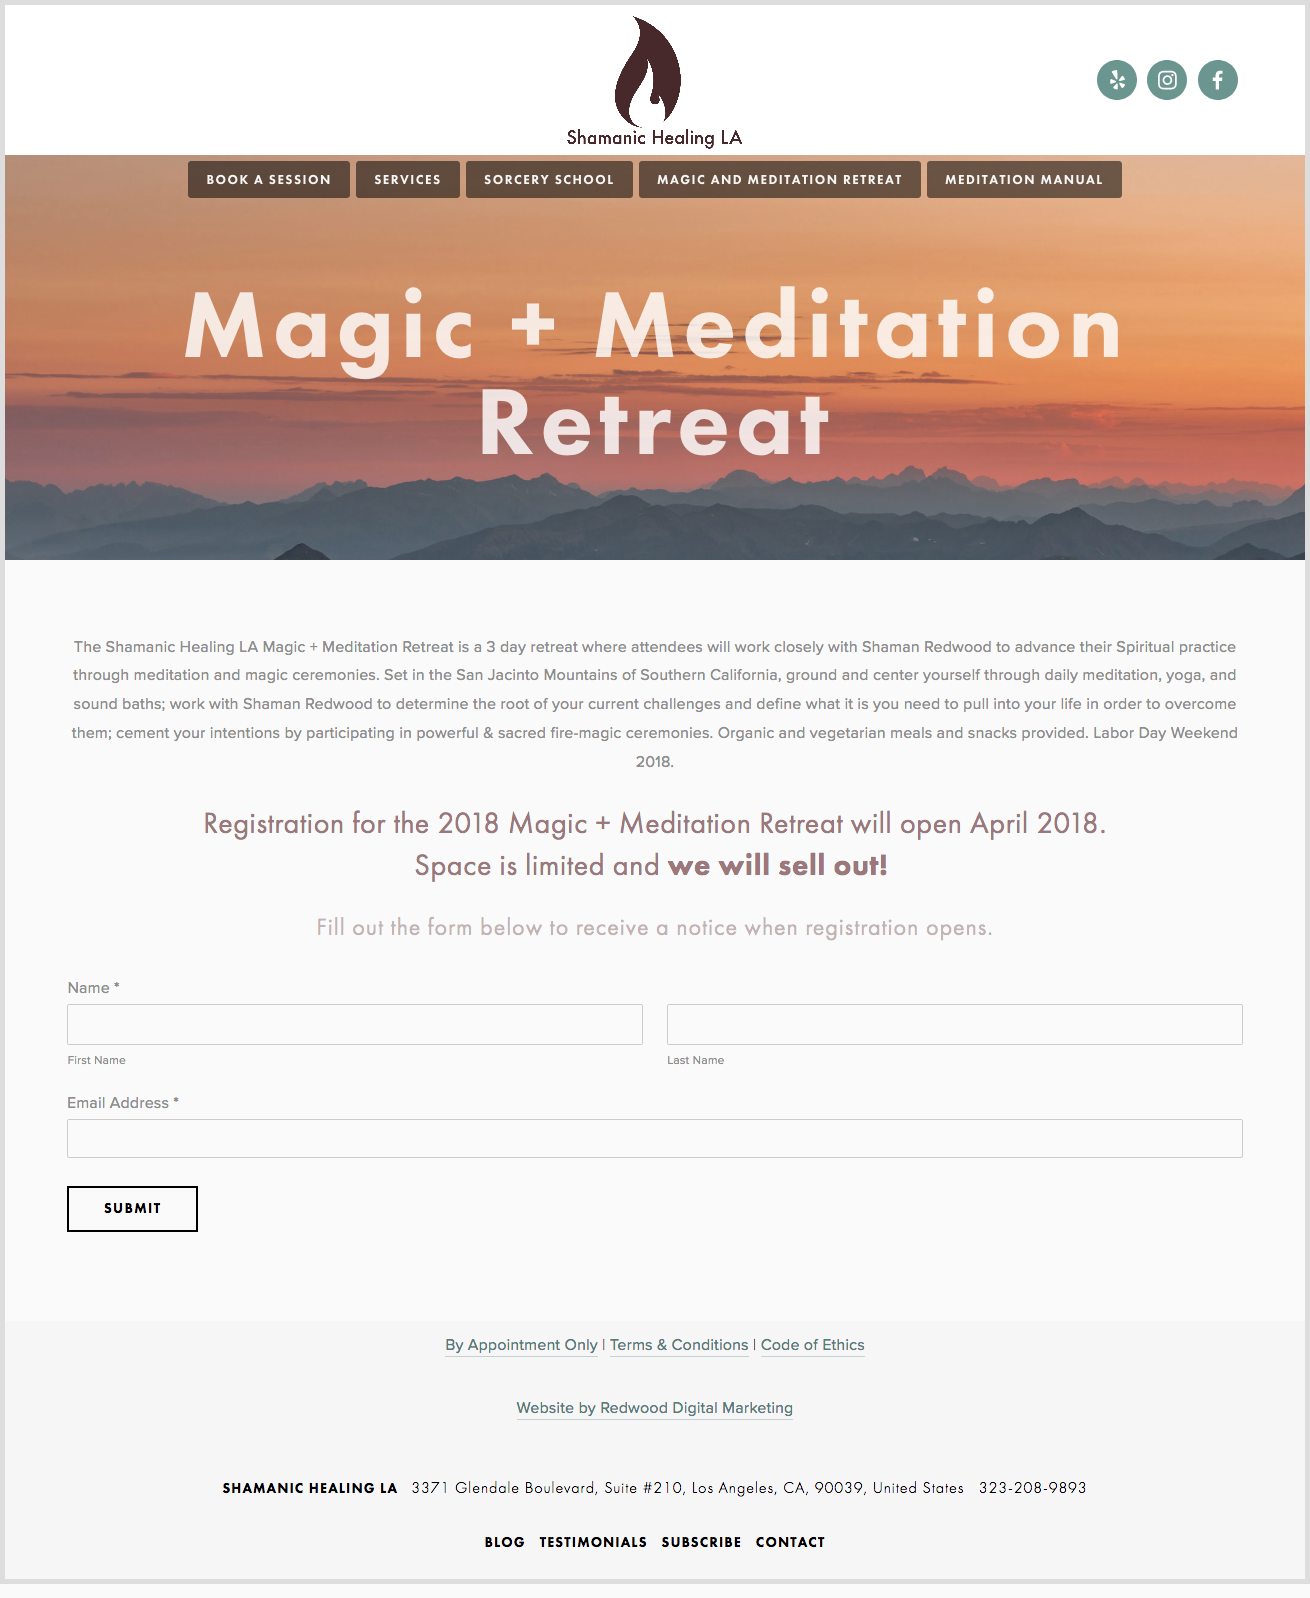 Shamanic Healing LA Website Sample 2.png